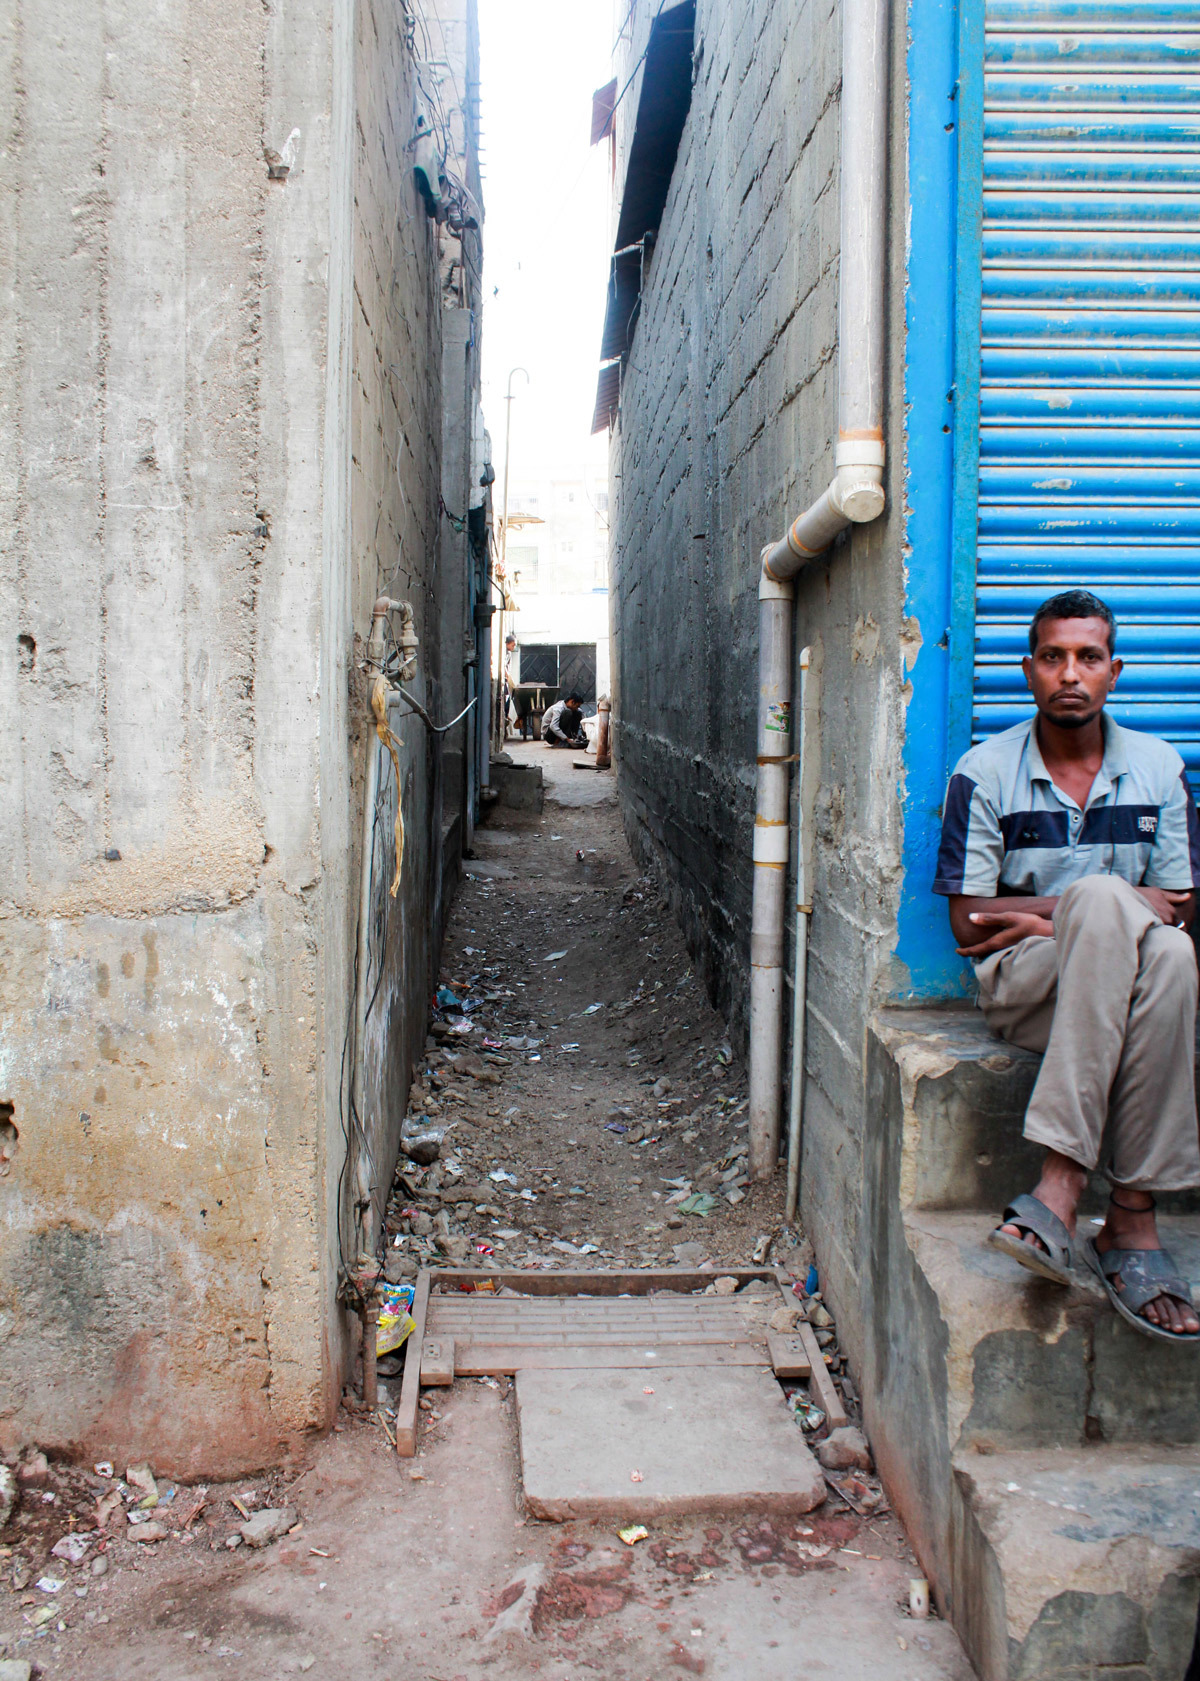 Sanitation is poor in Essa Nagri and the air filled with dust from the unconstructed streets with no asphalt on them.— Umer Sheikh